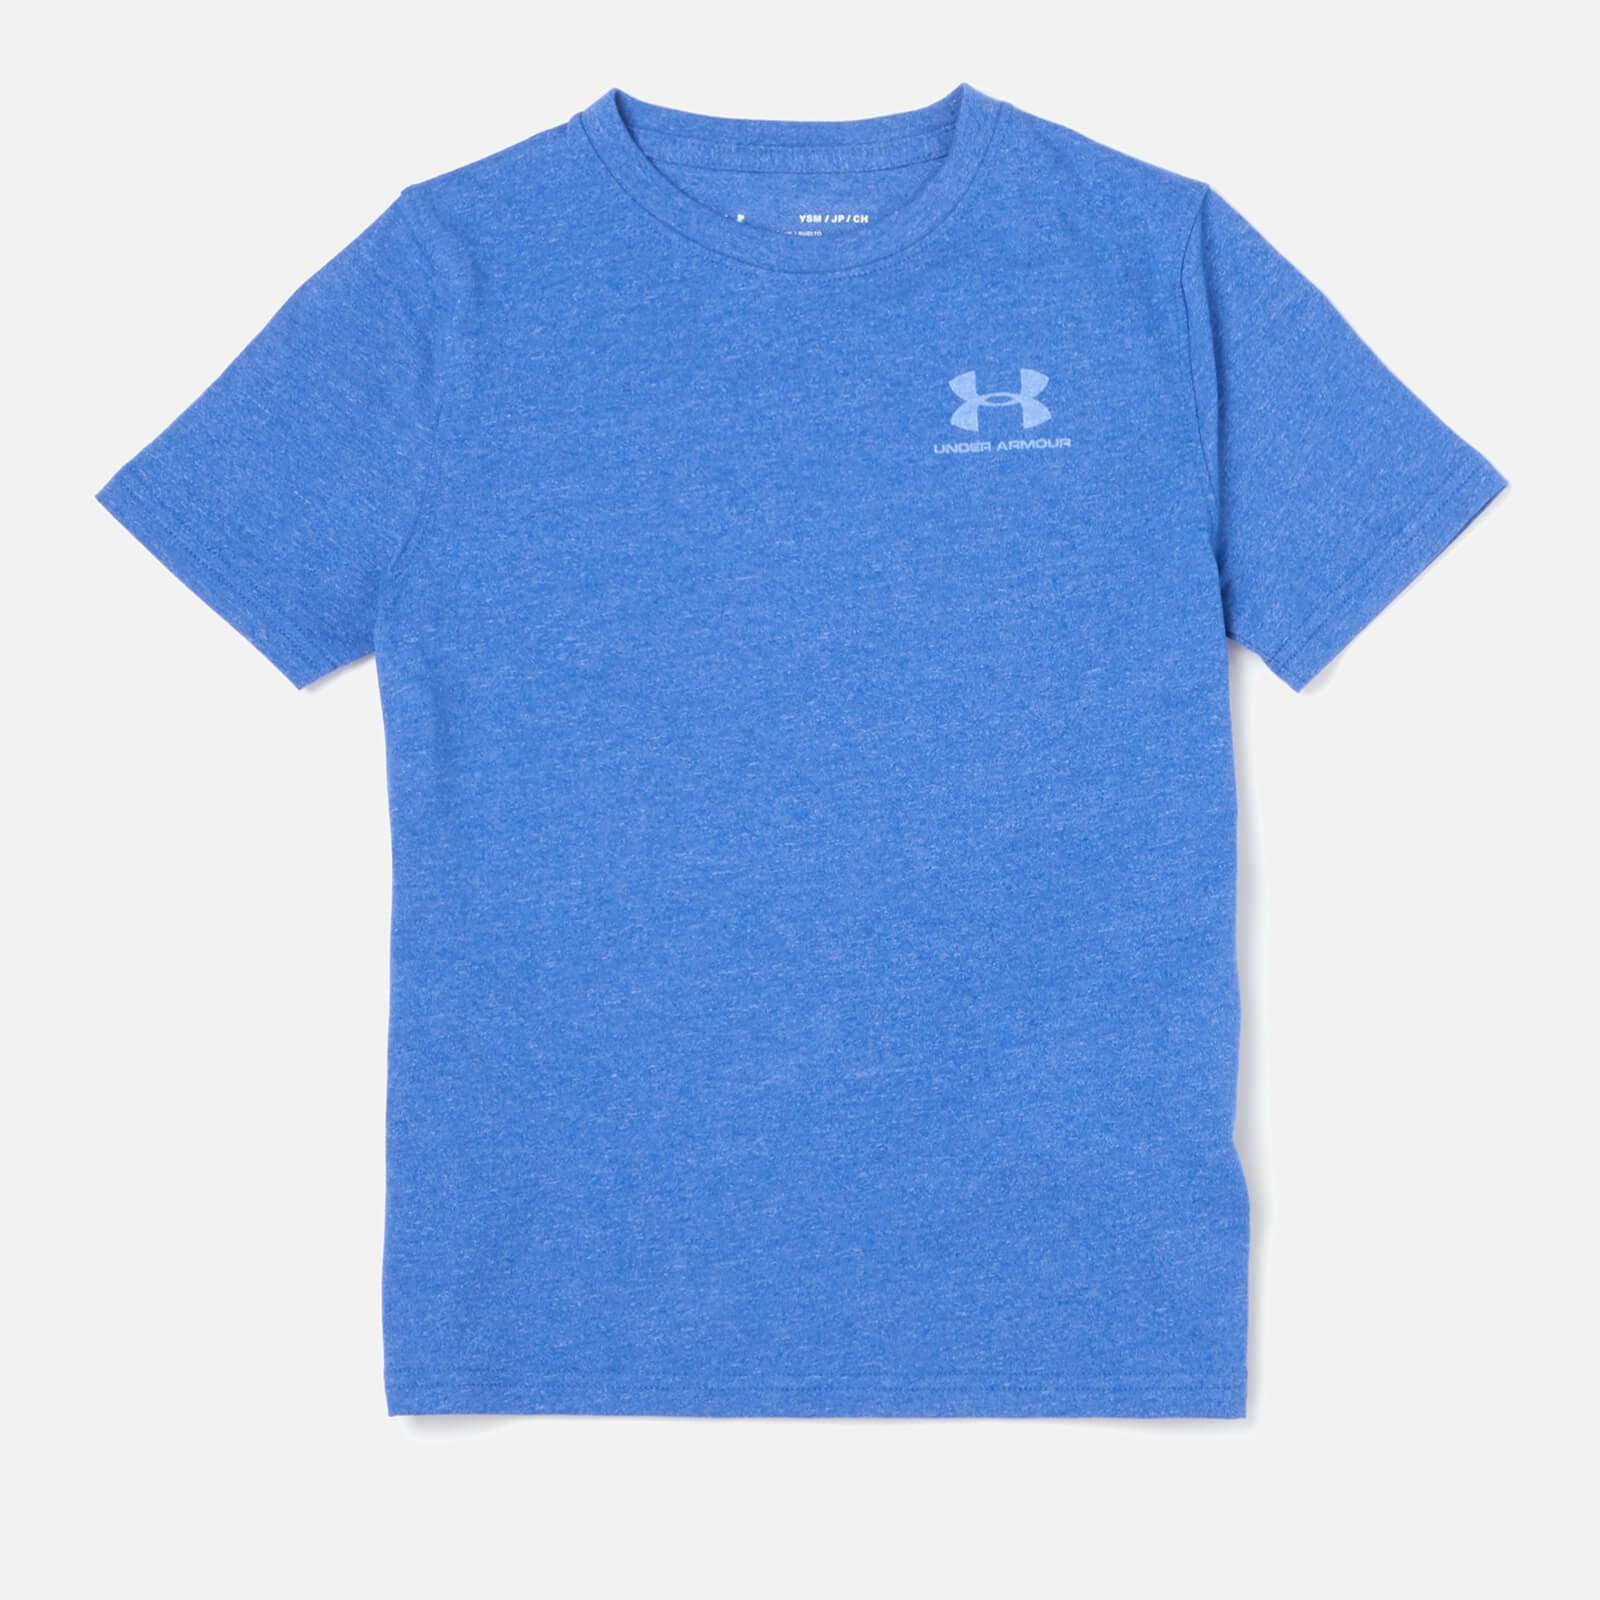 Under Armour Boys' Short Sleeve Cotton T-Shirt - Royal - XS - Blue